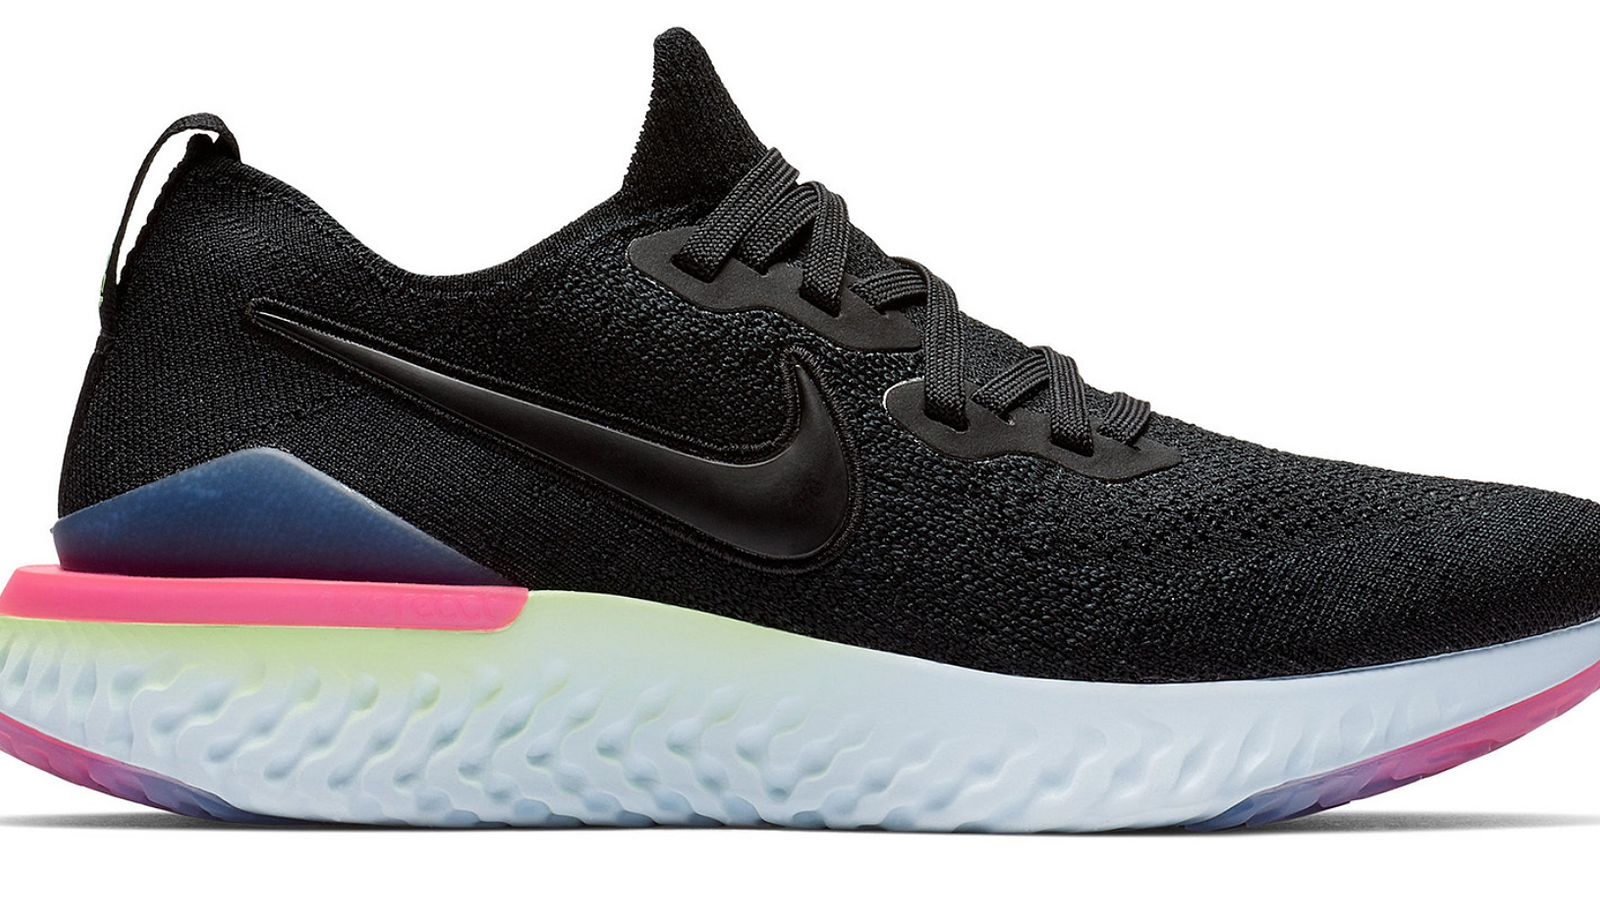 241277e414008 Shoe Review: Nike Epic React Flyknit 2 | Fleet Feet